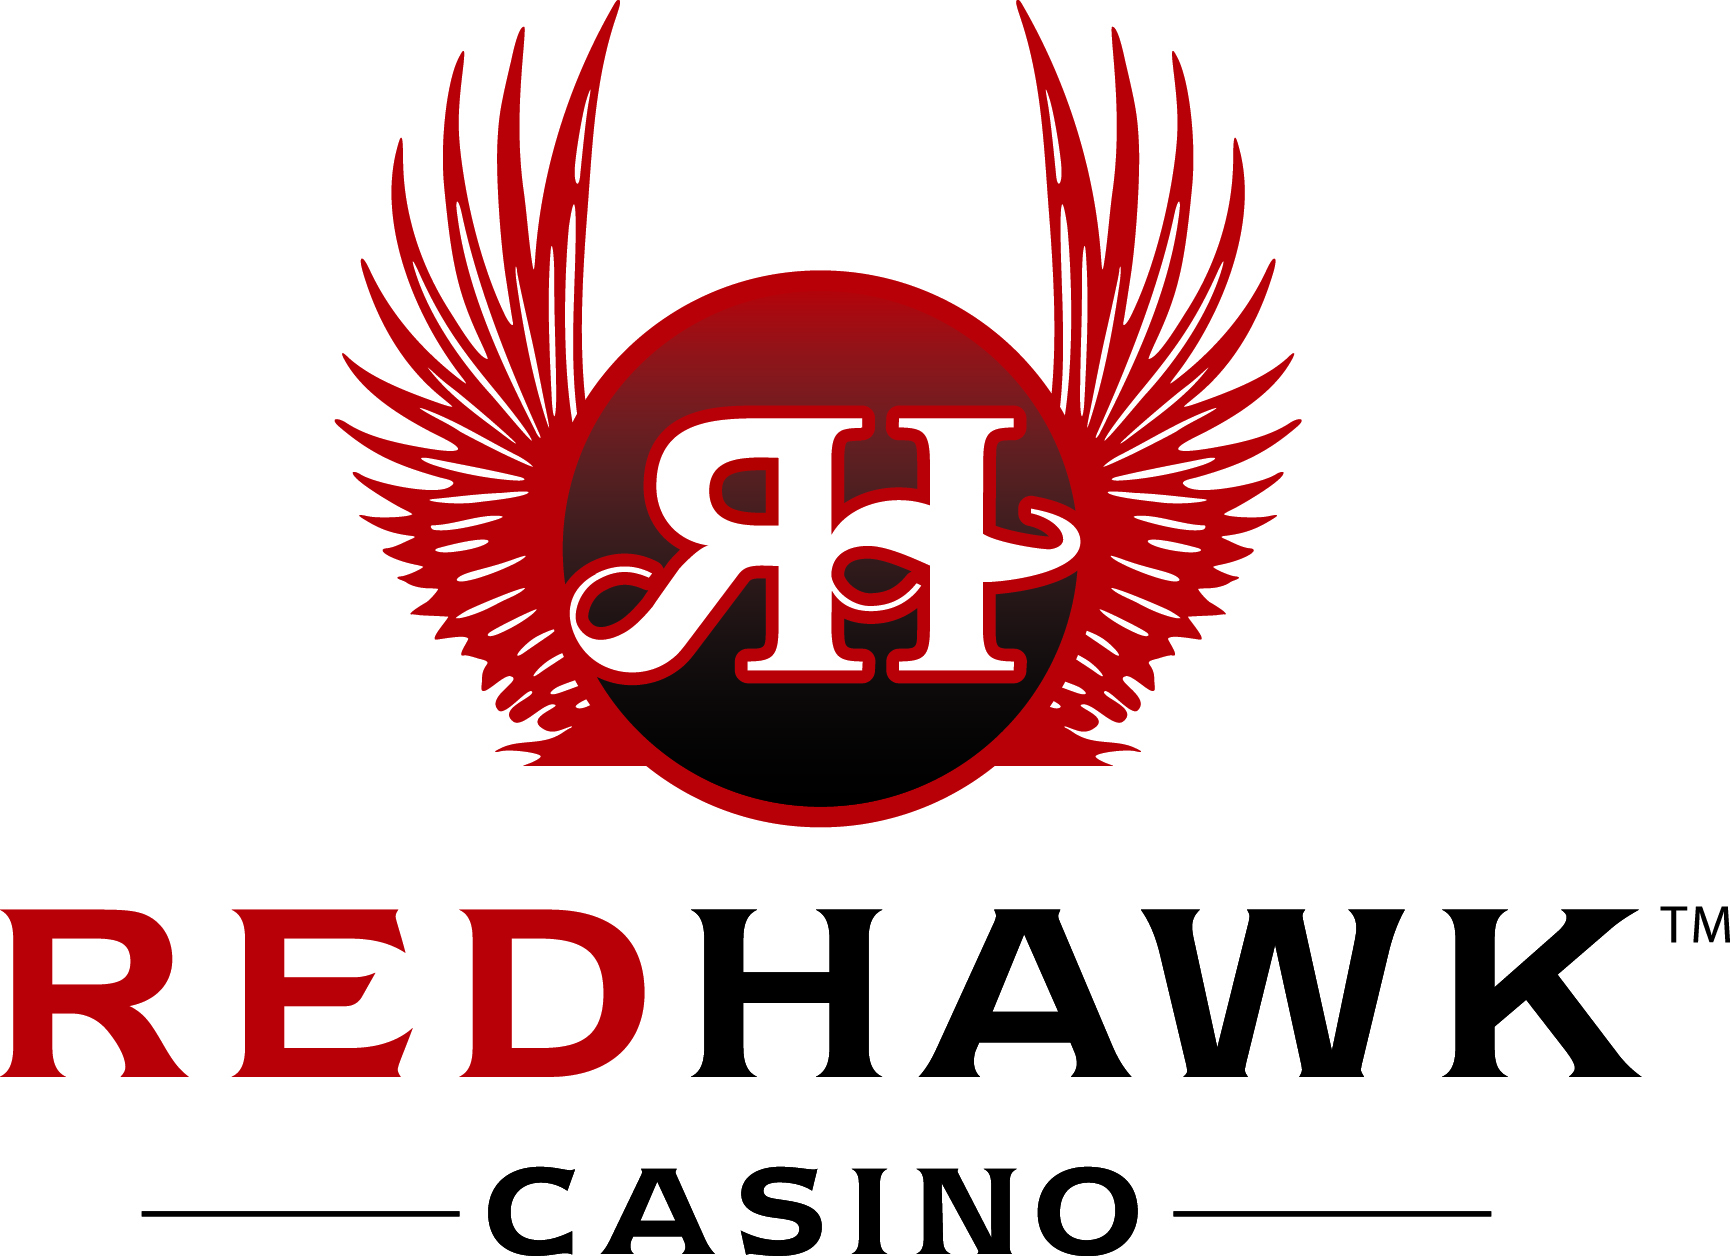 Red hawk casino news